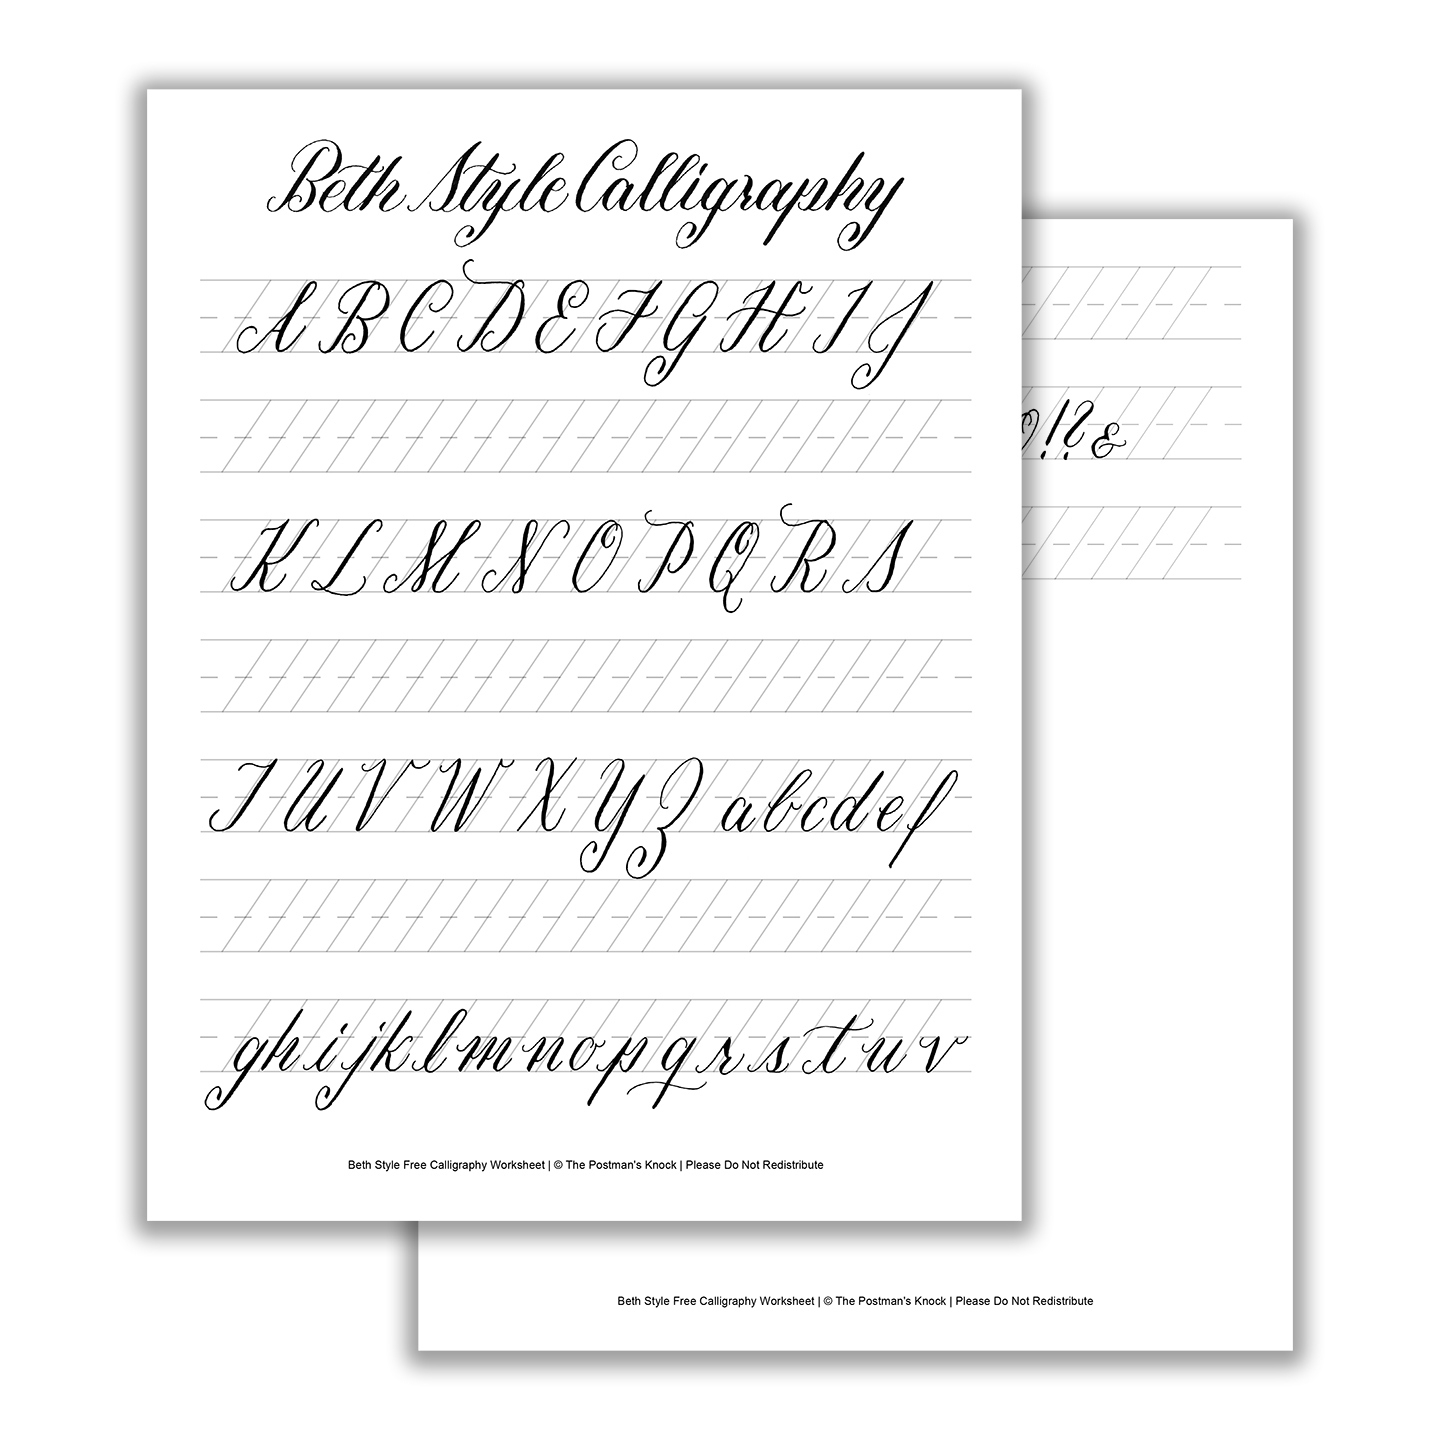 Beth Style Calligraphy Standard Worksheet | The Postman's Knock - Calligraphy Practice Sheets Printable Free